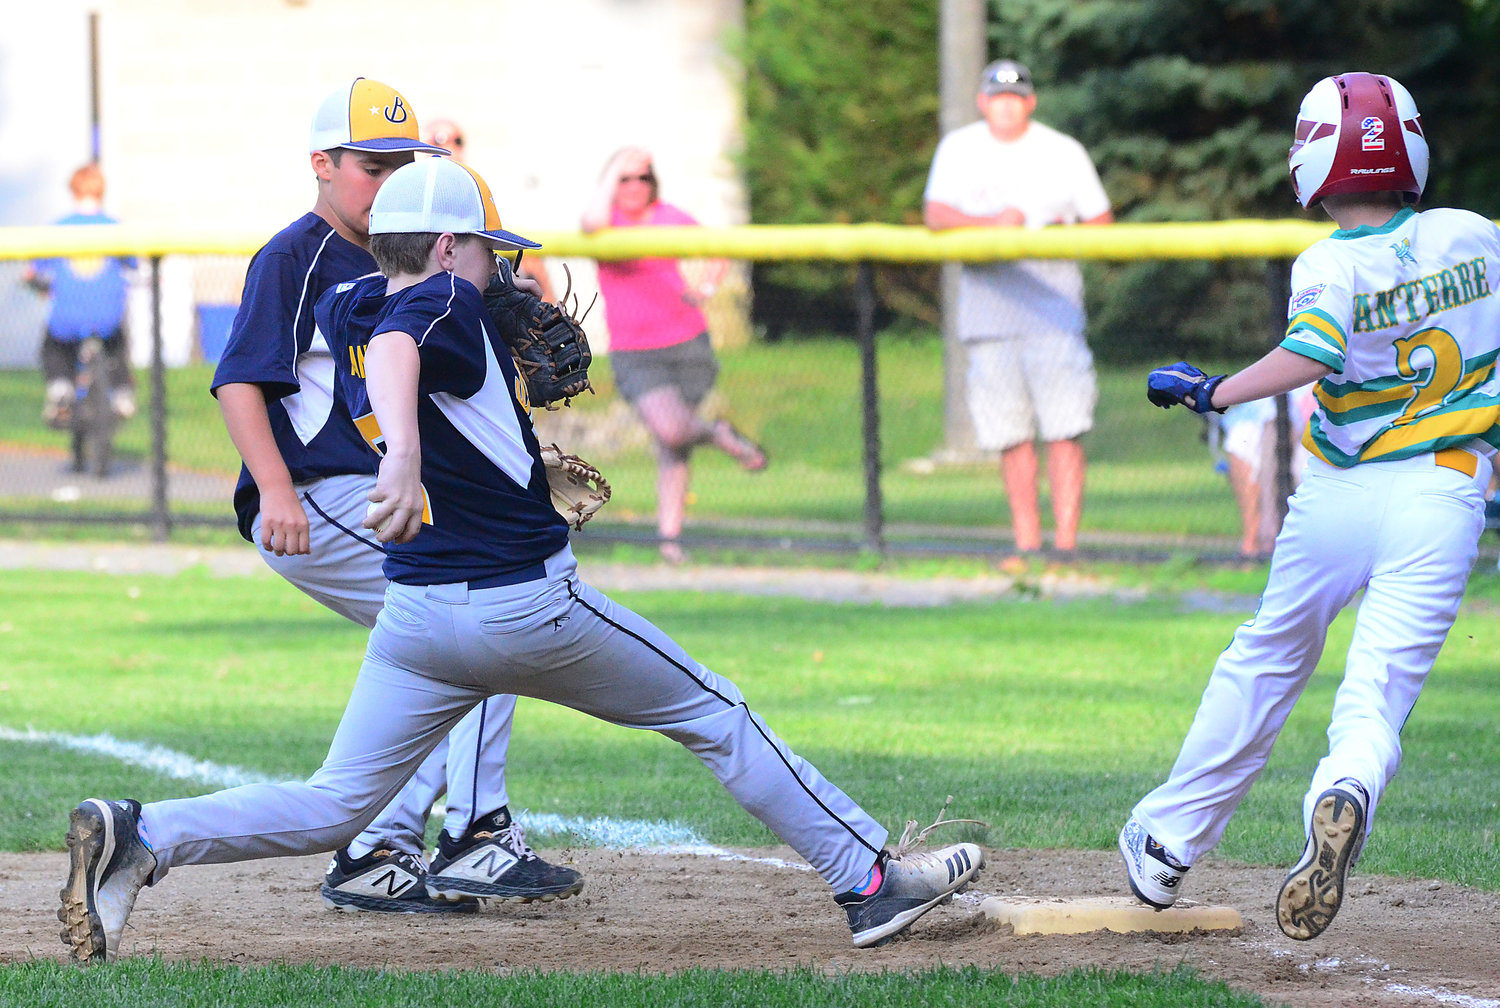 Lucas Tanous steps on first base just before a Bristol player reaches the bag.